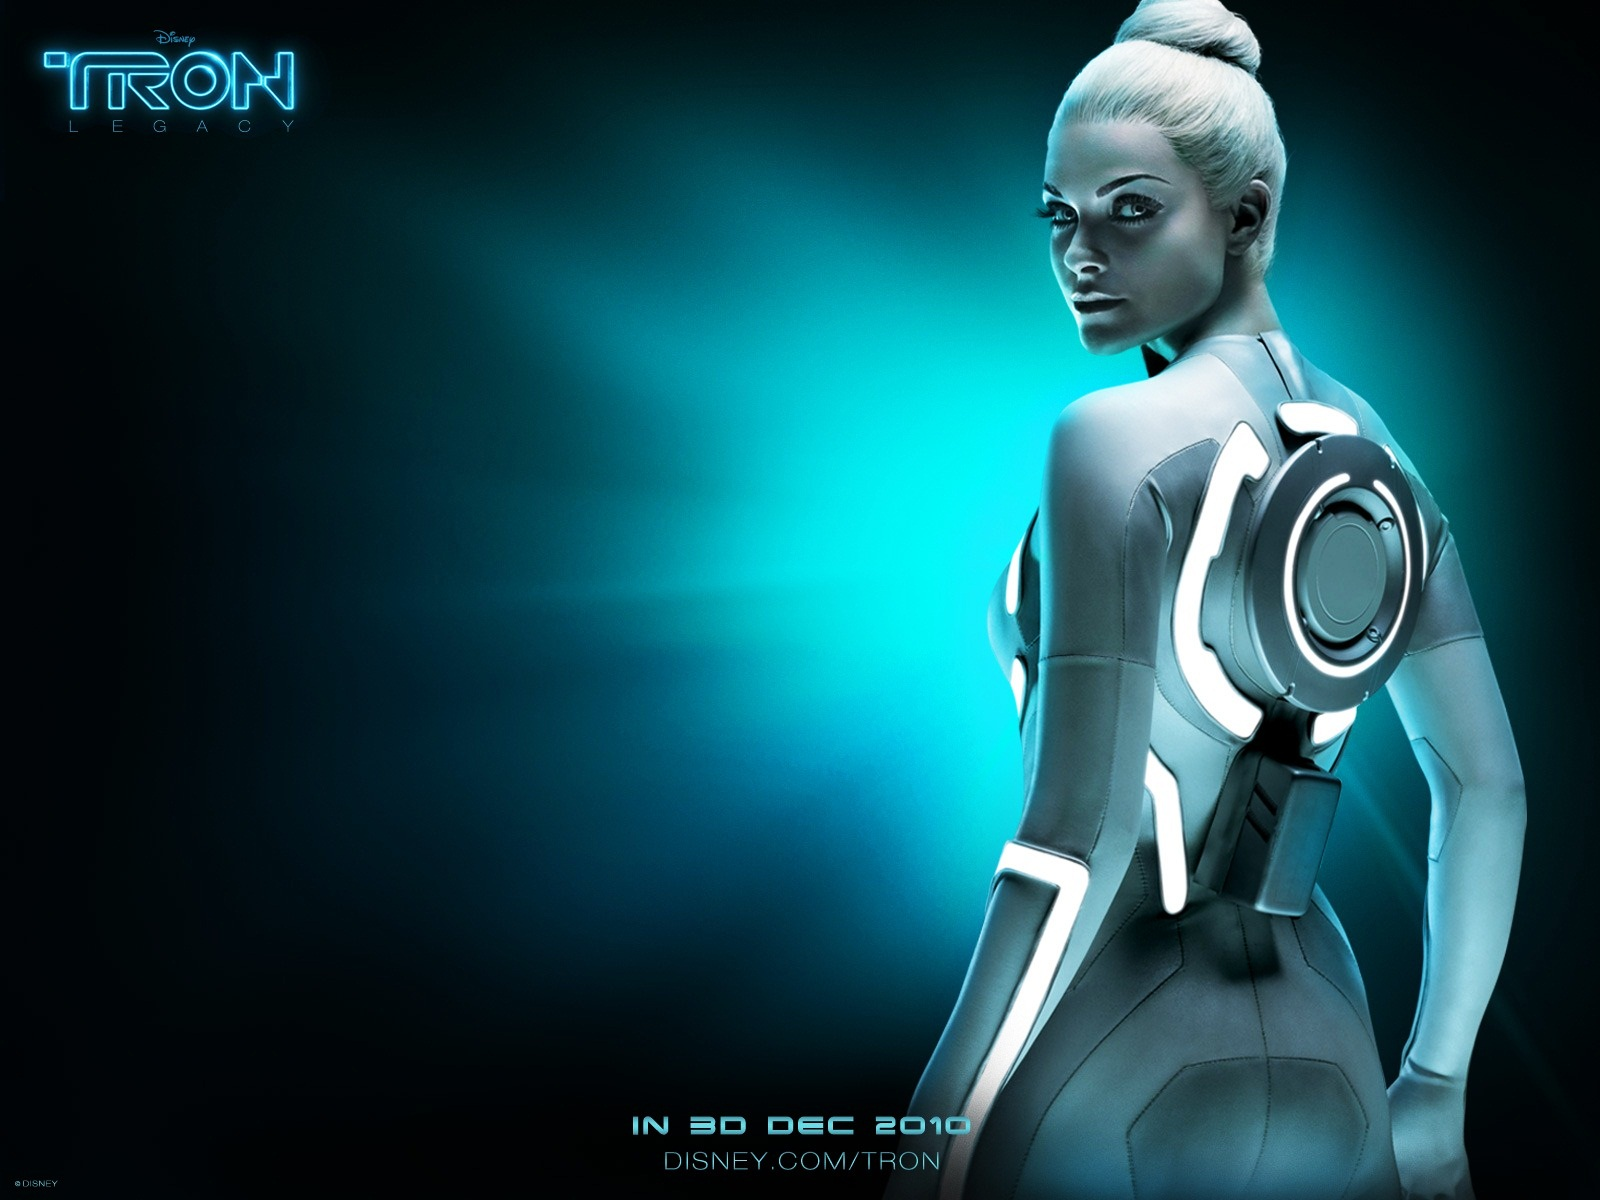 beau garrett in tron legacy - wallpaper, high definition, high